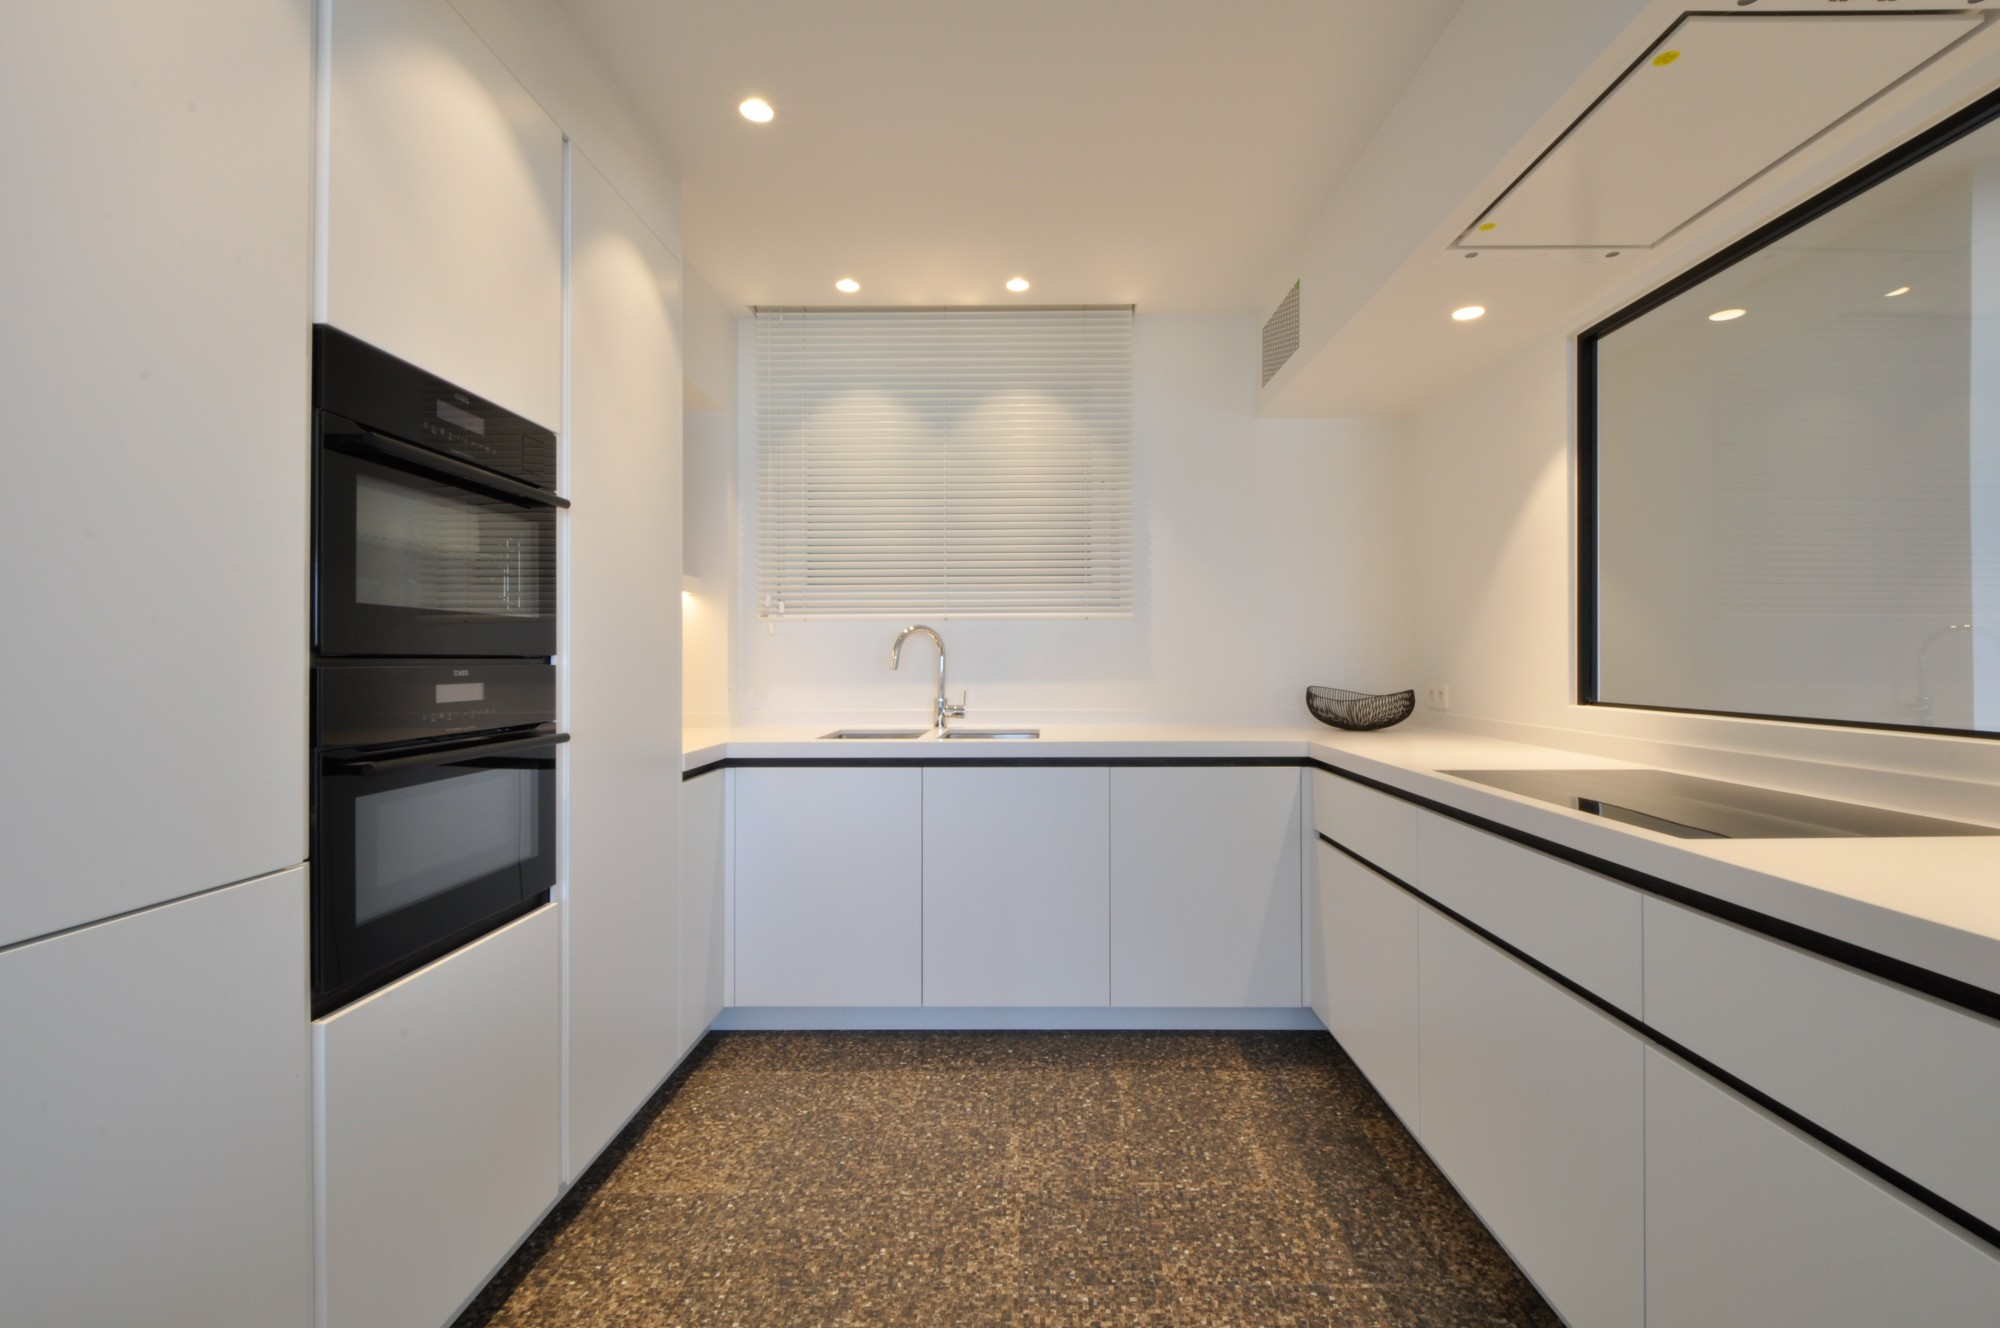 Ventes appartement t3 f3 knokke heist zeedijk agence for Agence immobiliere vente appartement